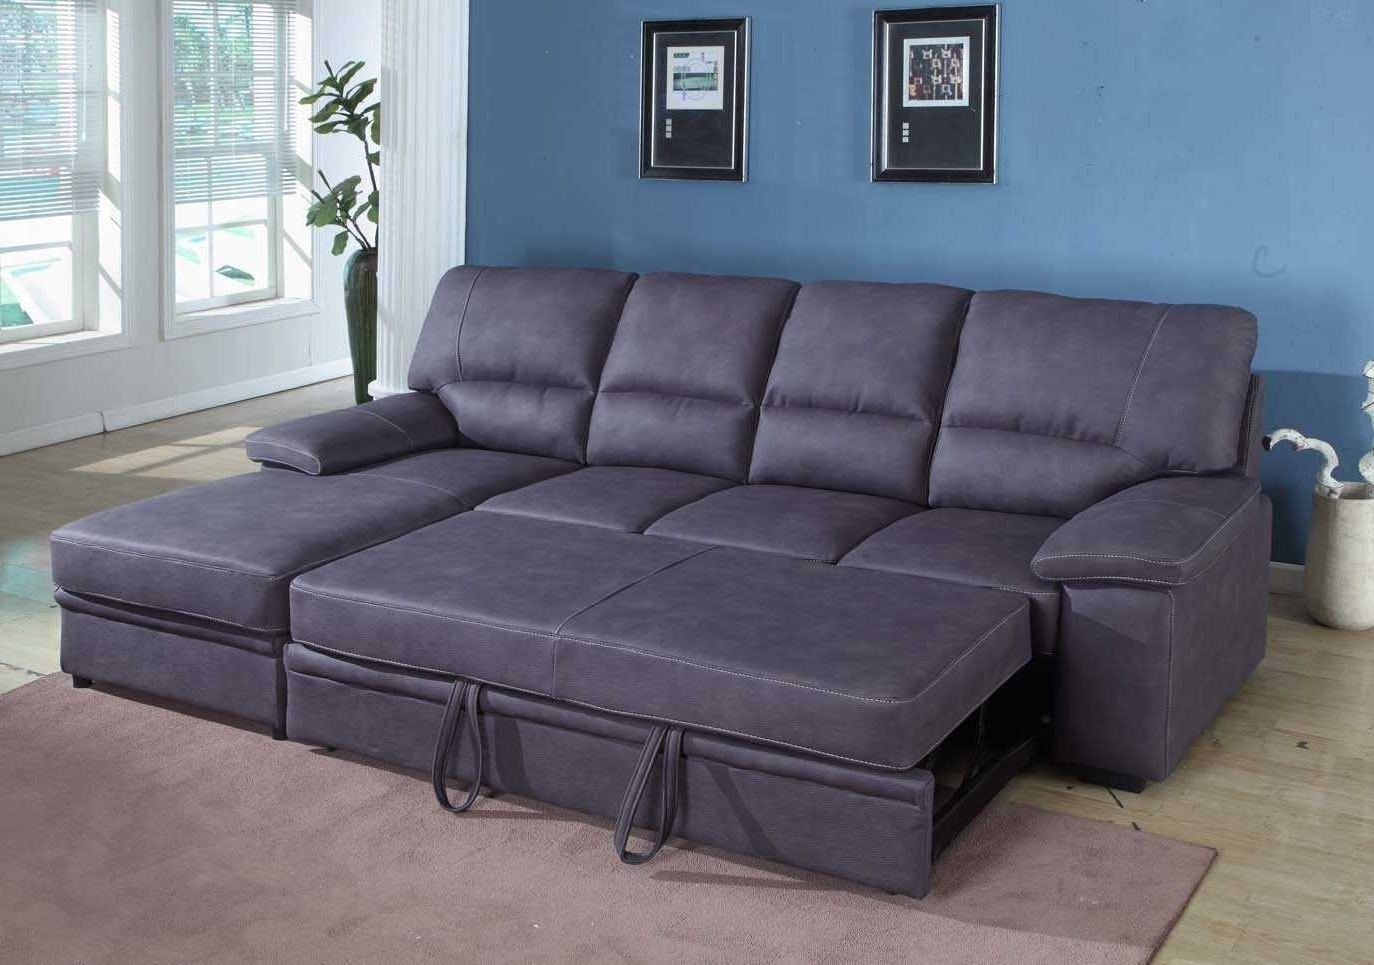 Gray Sectional Sofa With Chaise ~ Americanfurnituremanufacturer Inside Well Known Grey Sectional Sofas With Chaise (Gallery 7 of 15)